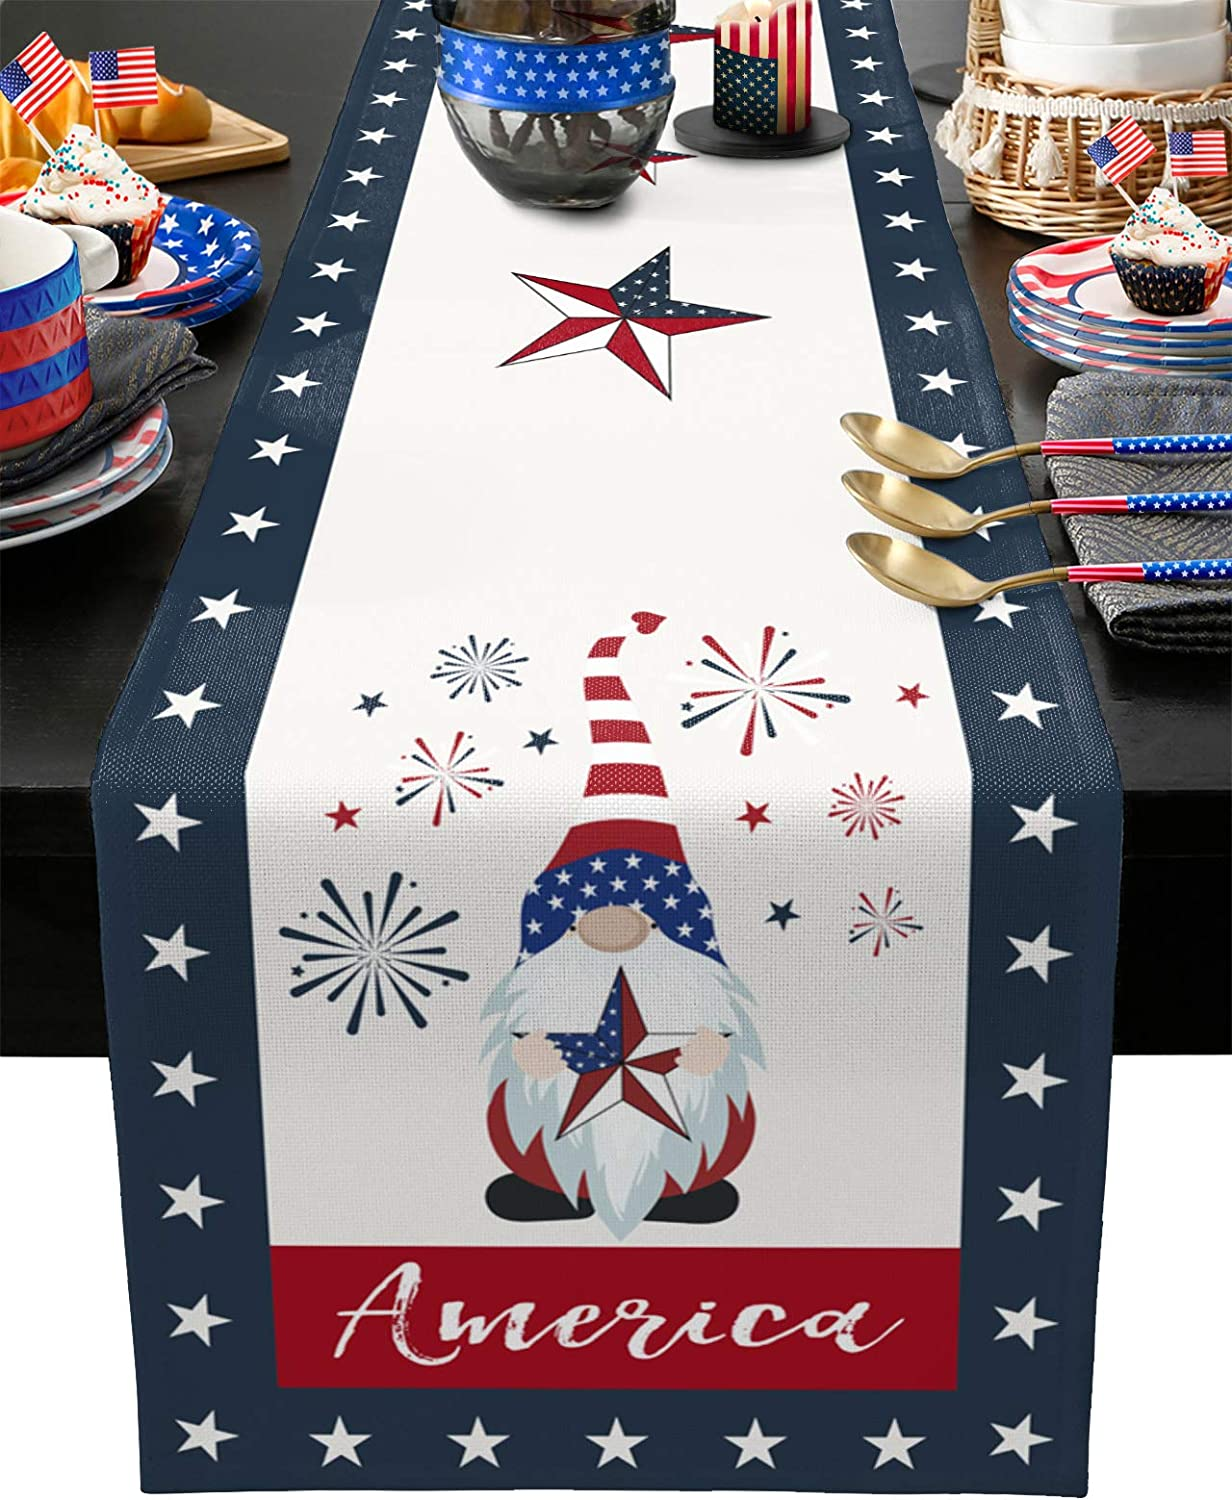 Cloud Dream Home Cotton Linen Table Runner Gnome Hold American Star Flag Pattern Table Setting Decor Patriotic Fireworks for Garden Wedding Parties Dinner Decoration - 13 x 70 inches